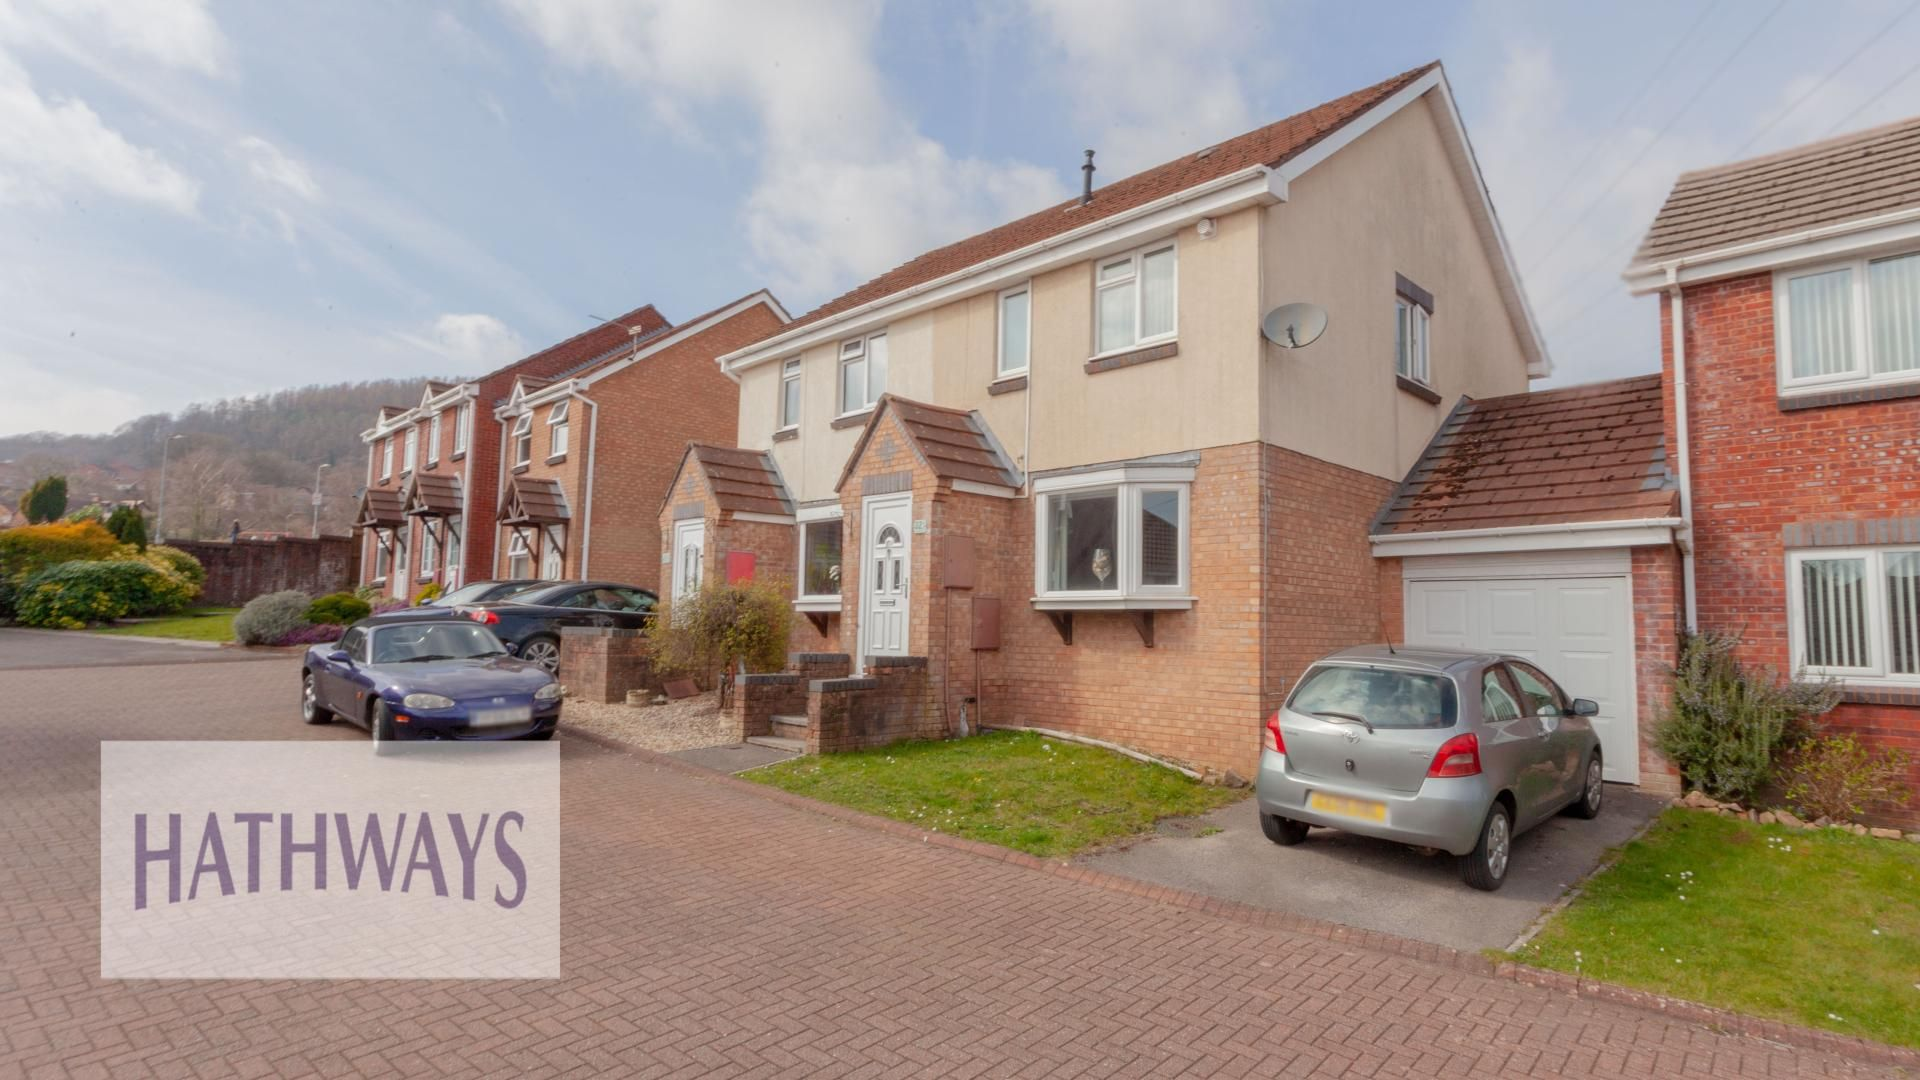 3 bed house for sale in Pant Gwyn Close, NP44